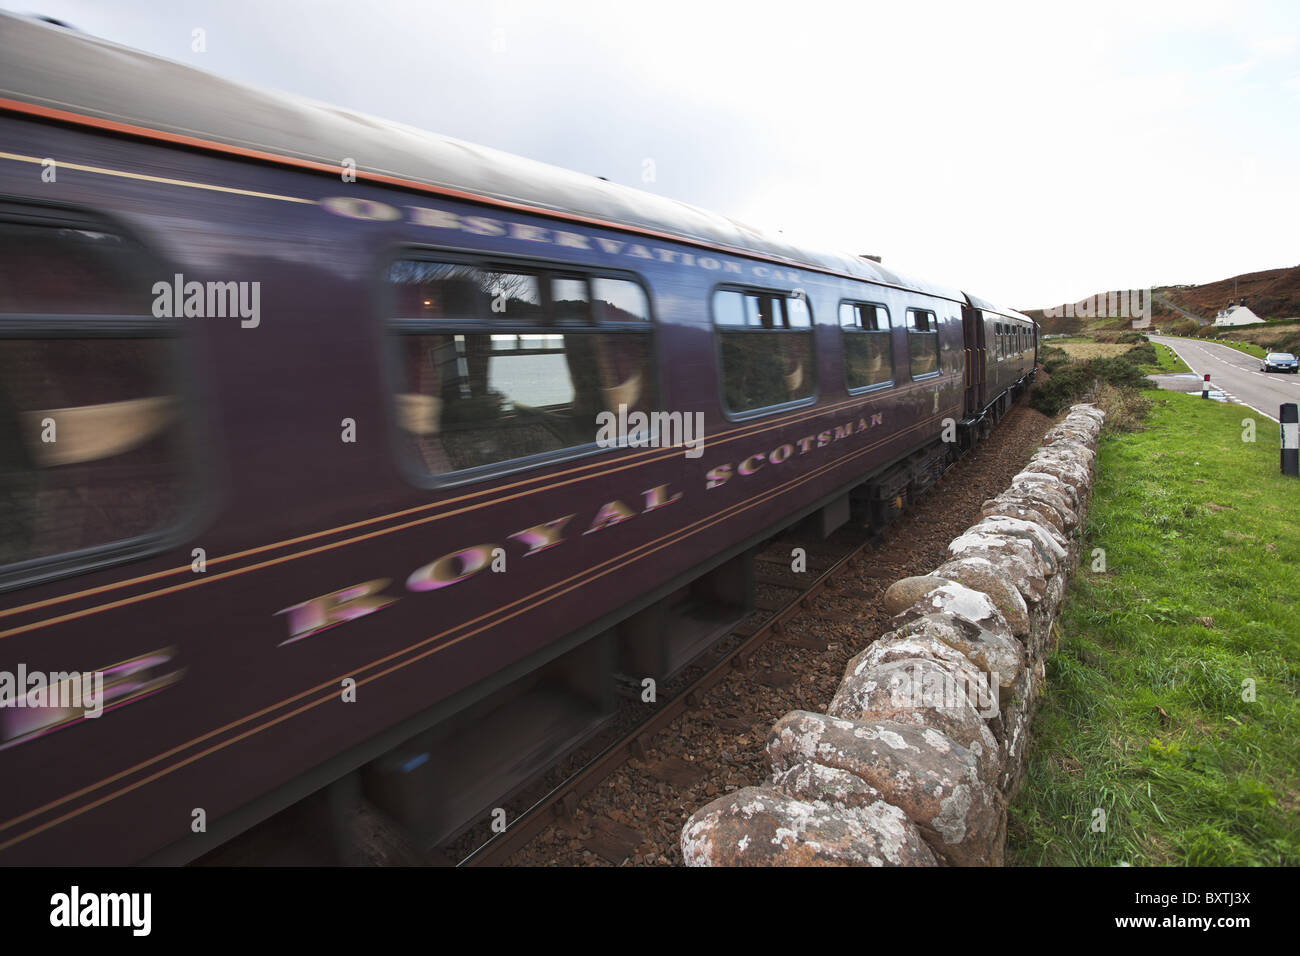 The Royal Scotsman Train. - Stock Image